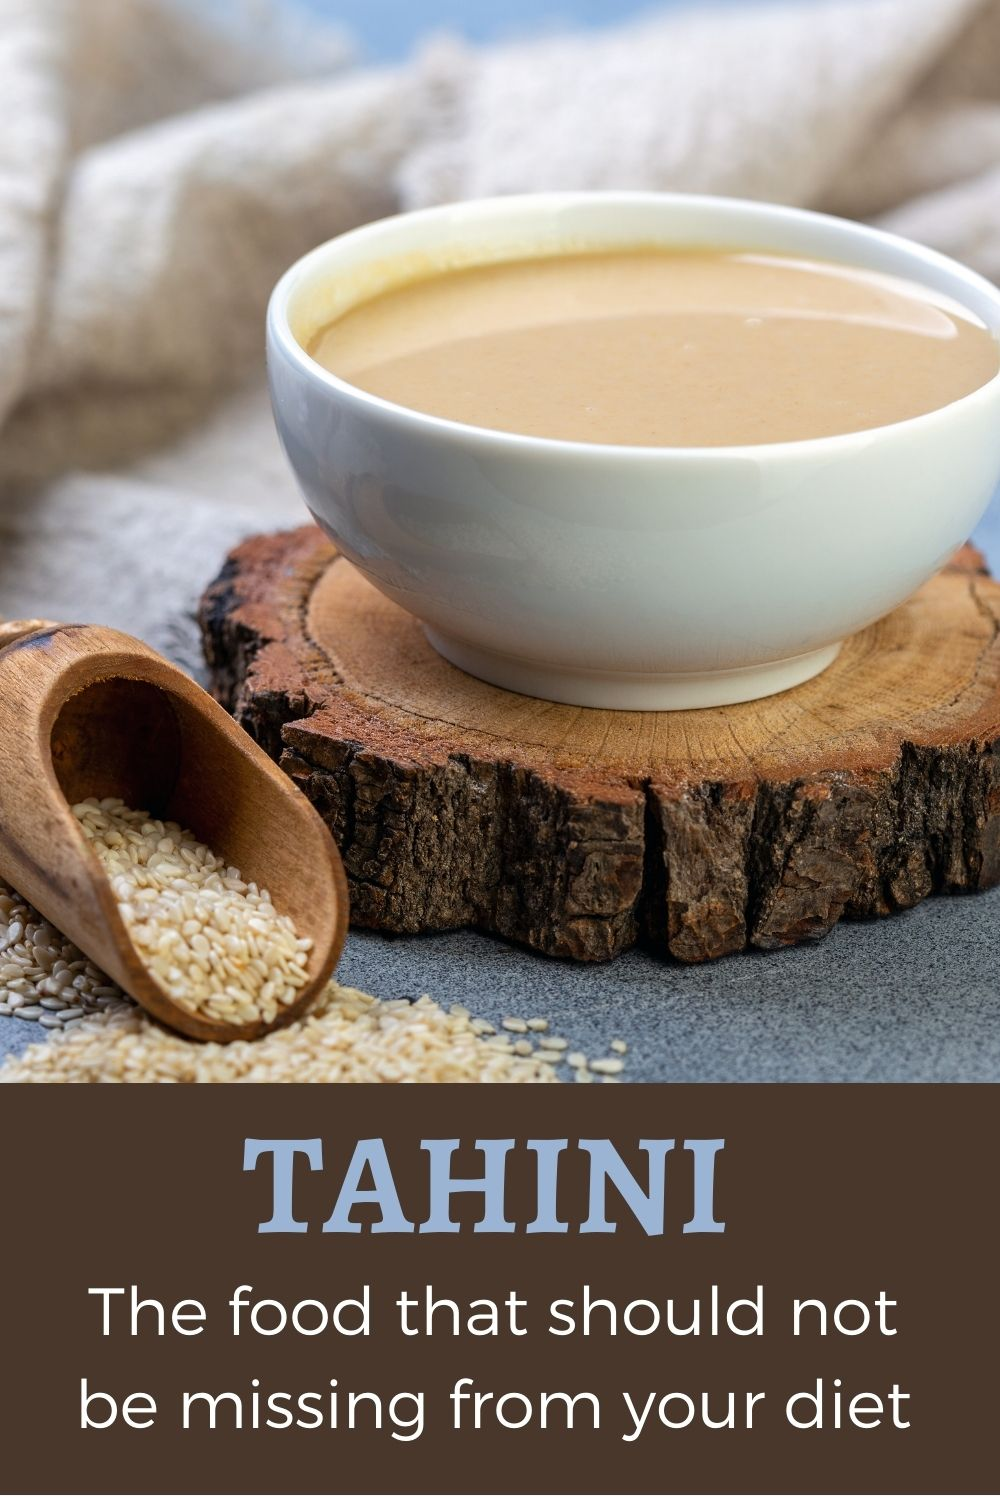 Tahini, the food that should not be missing from your diet